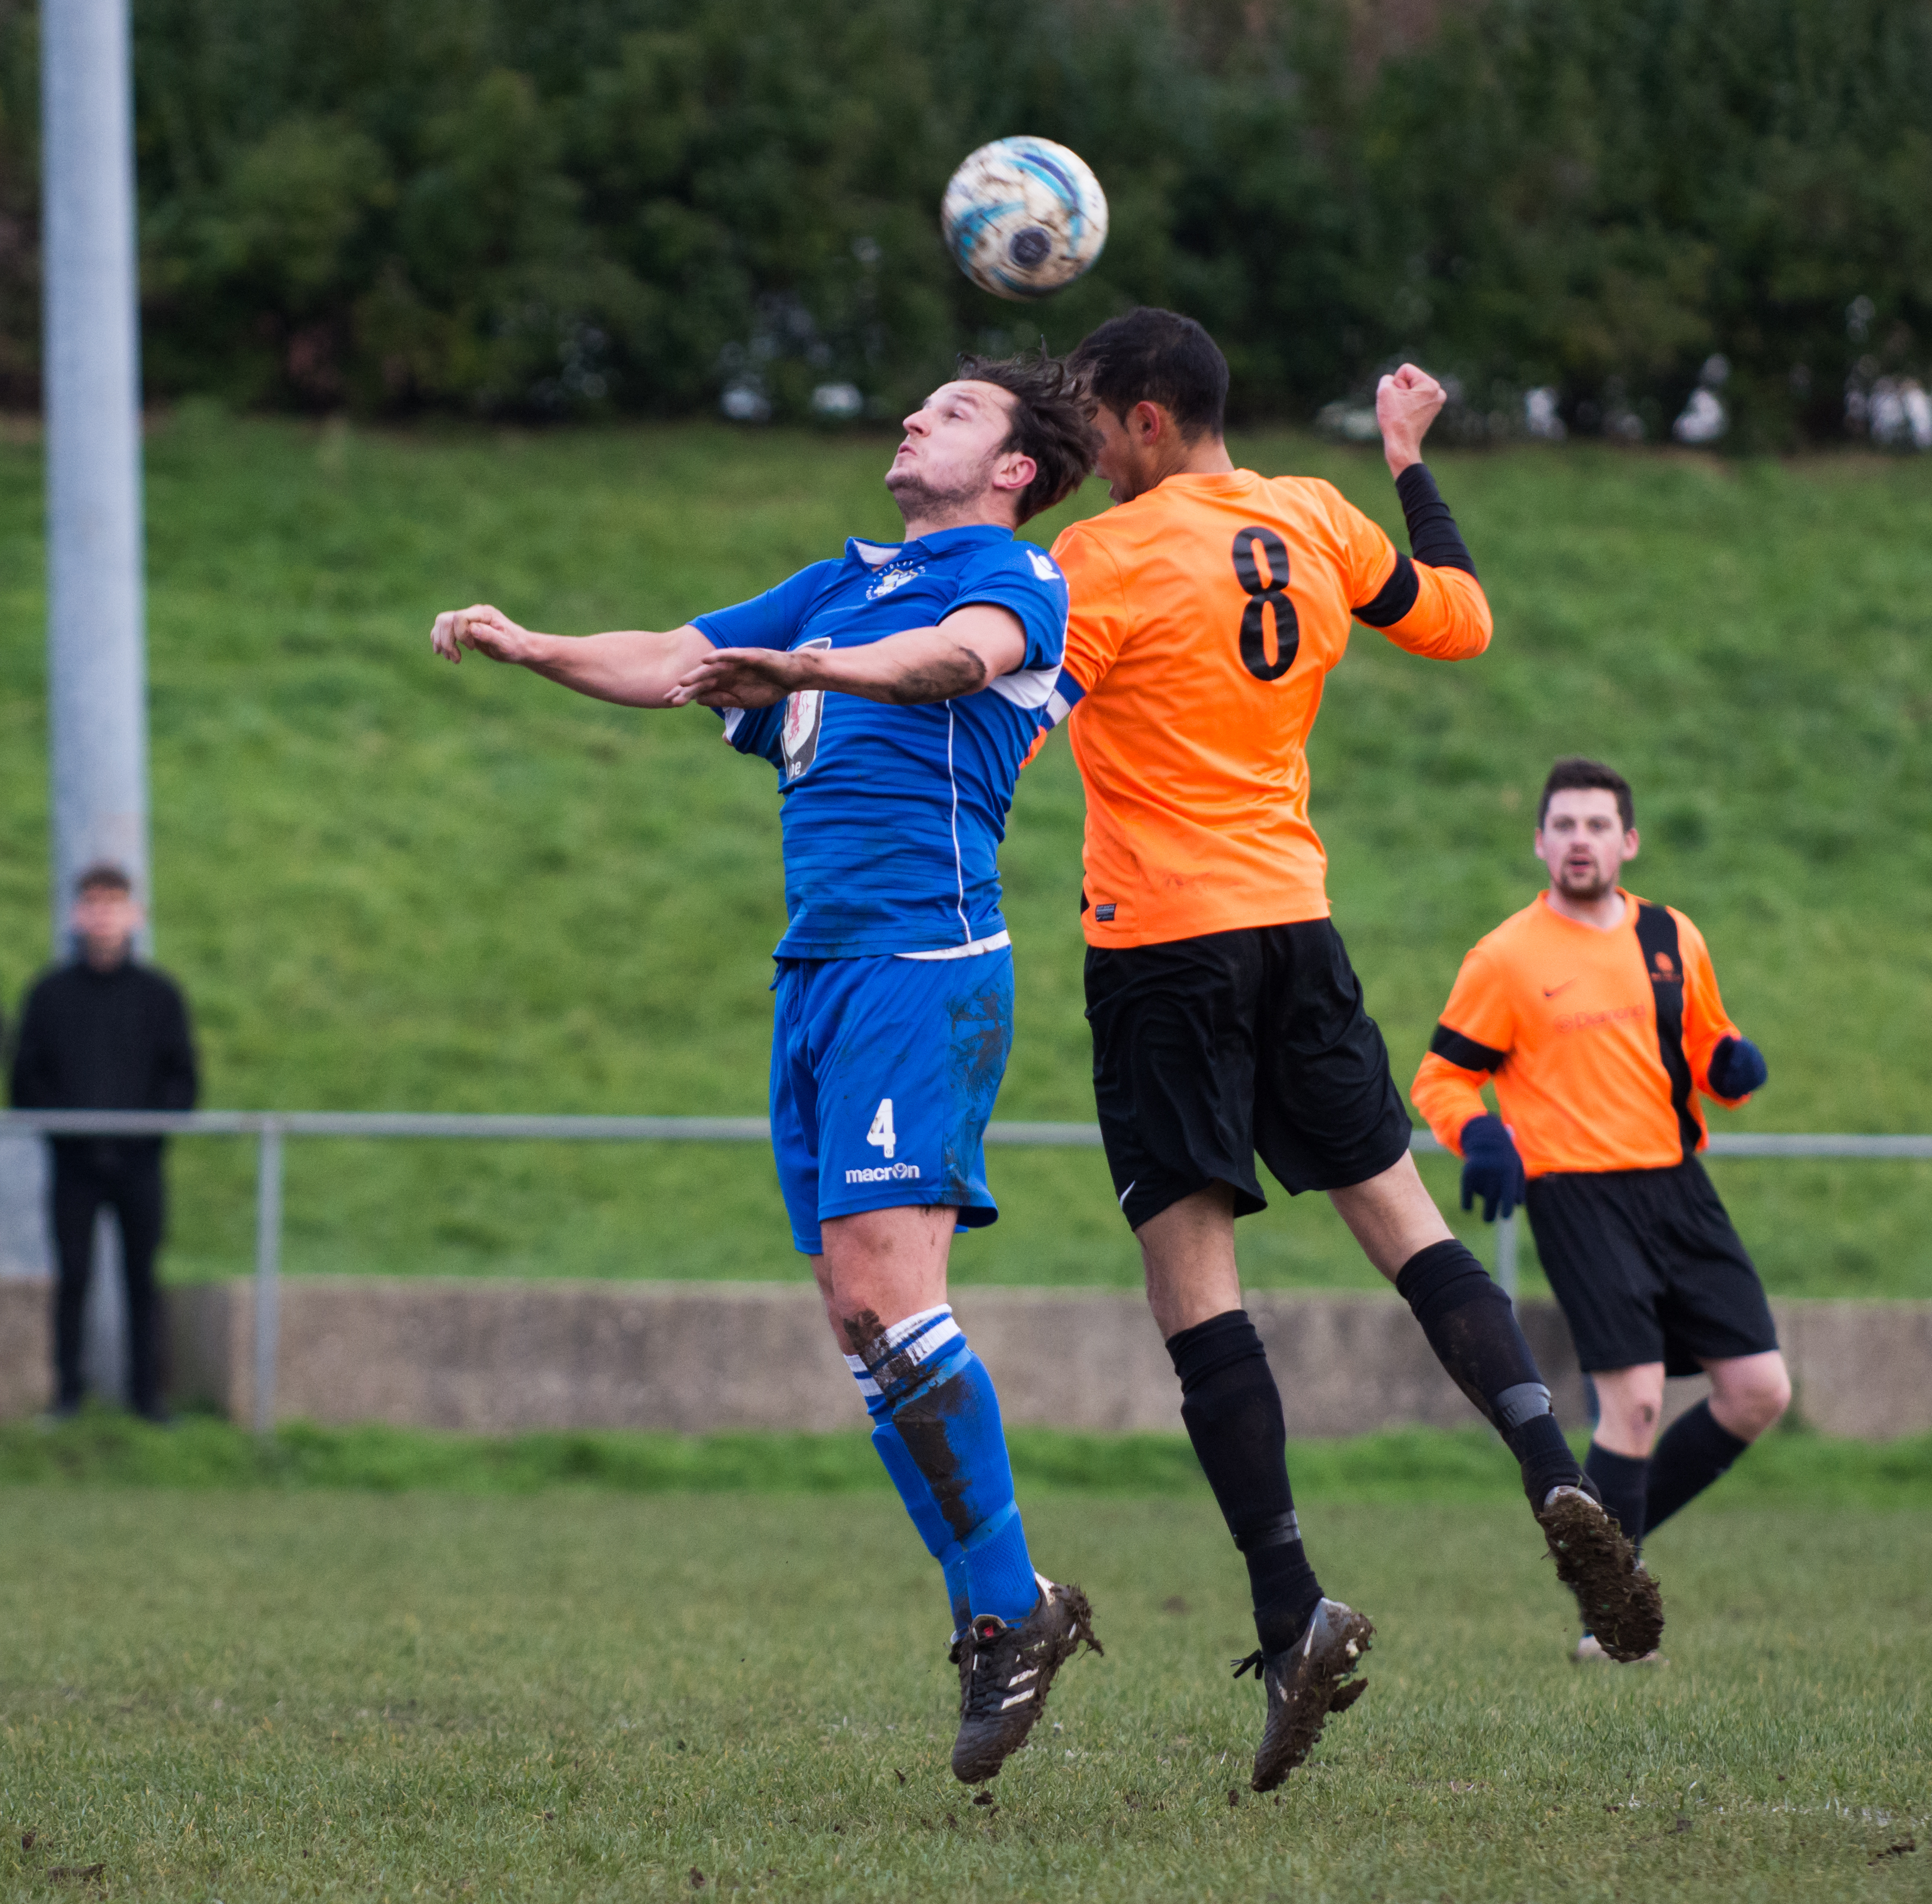 Mile Oak Res vs Sidley United 09.12.17 10